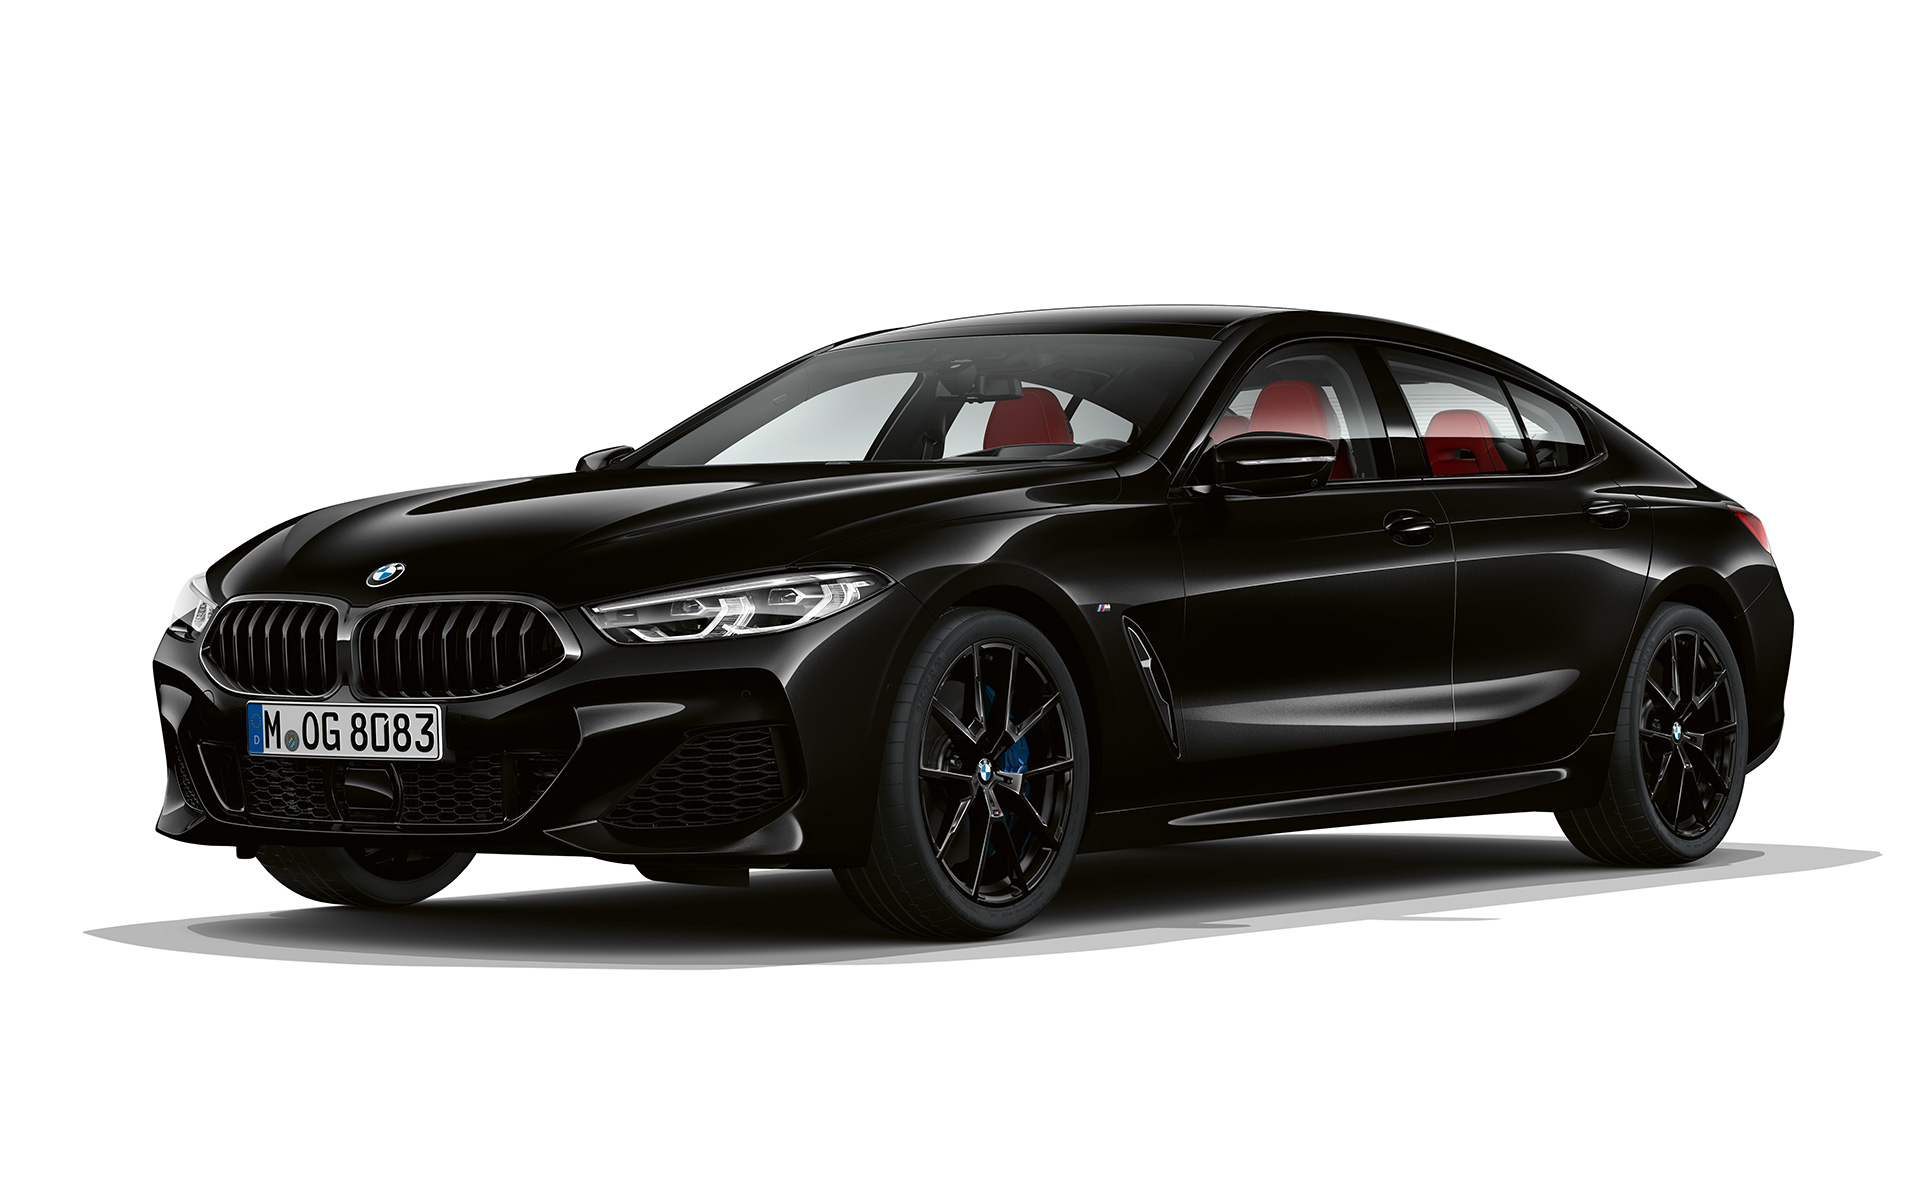 BMW 8 Serie Gran Coupé, Dark Seduction driekwart vooraanzicht